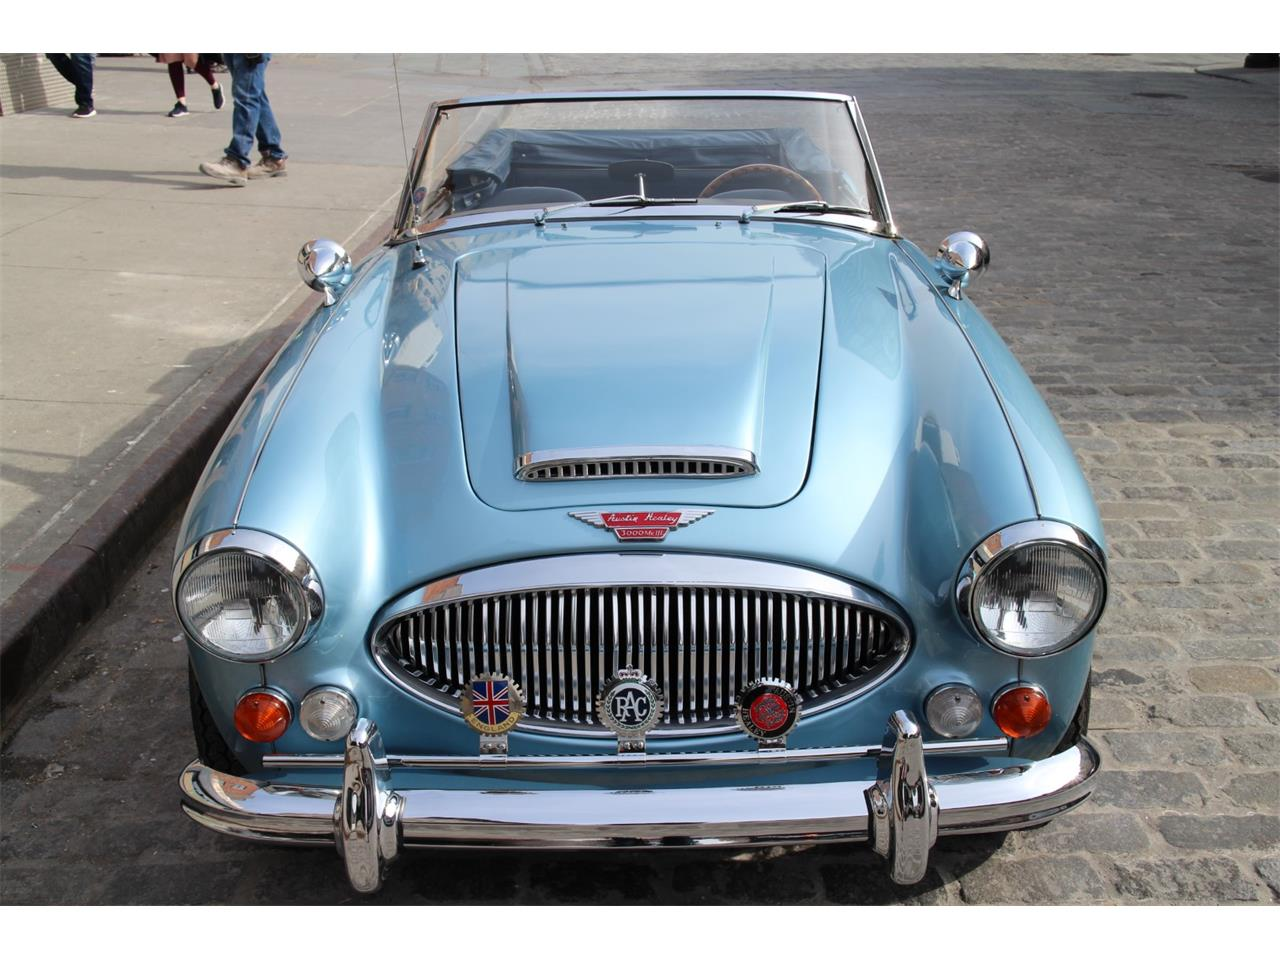 1967 Austin-Healey 3000 Mark III BJ8 (CC-1315583) for sale in New York, New York